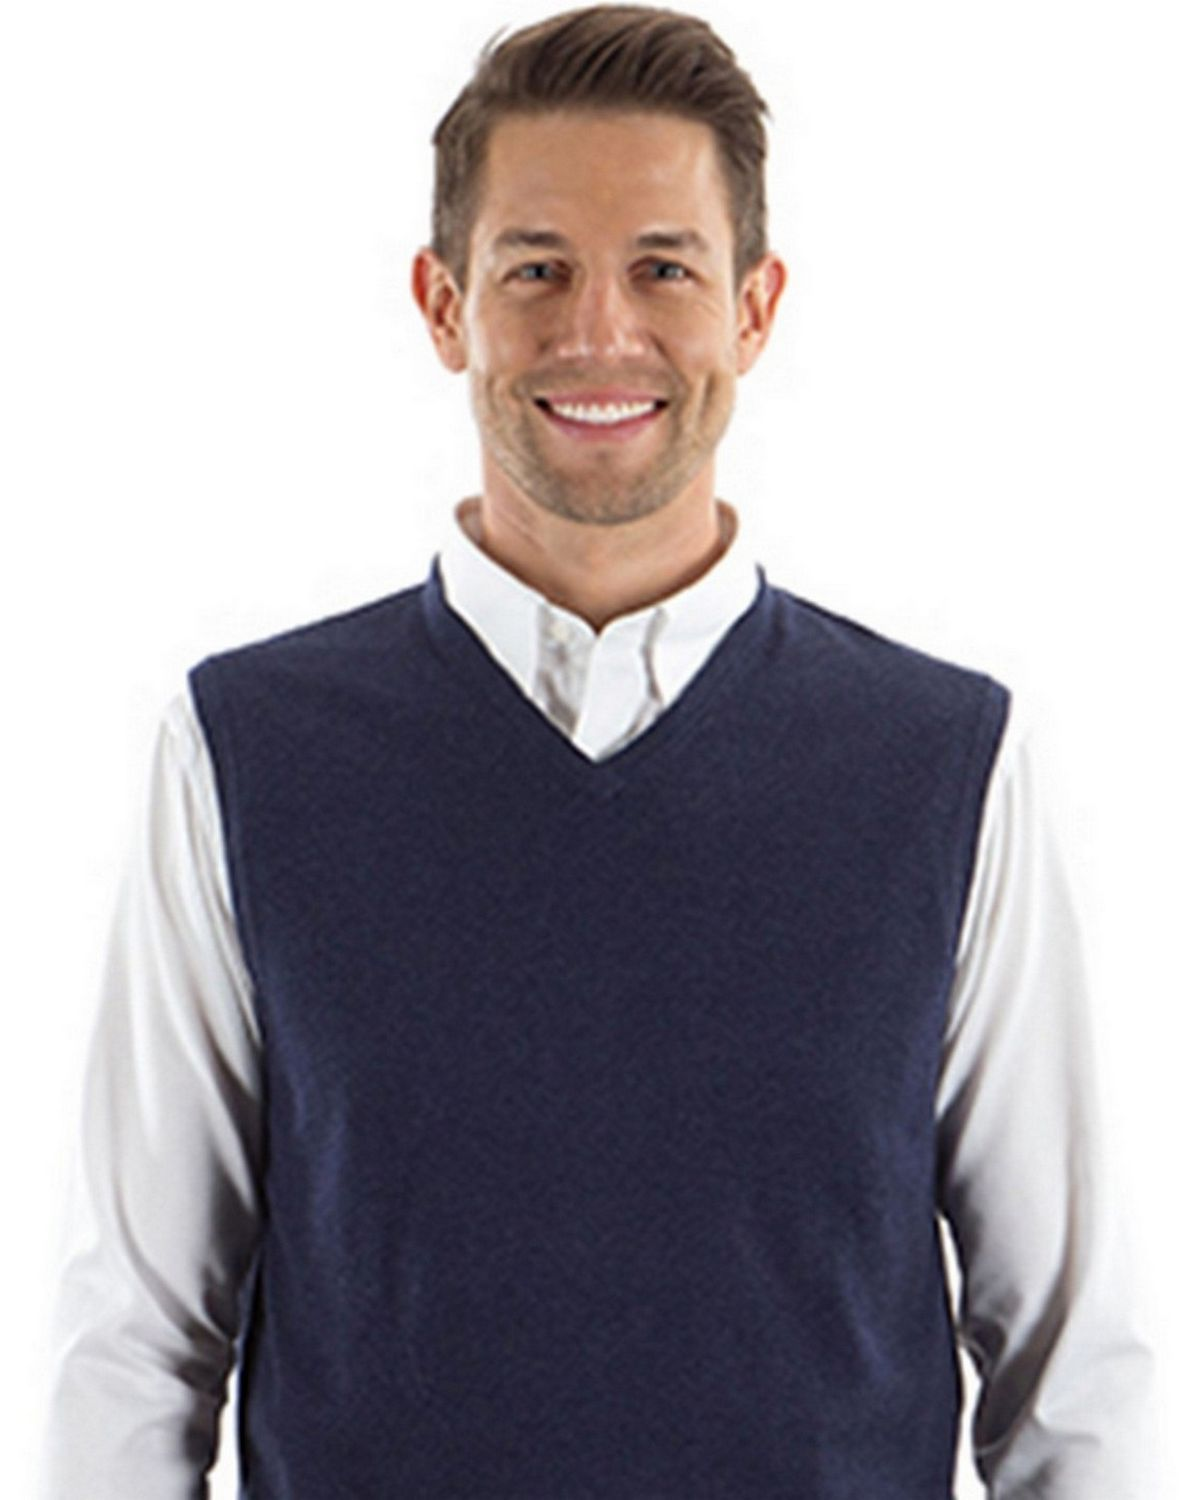 Van Heusen 13VS004 Mens Sweater Vest - ApparelnBags.com